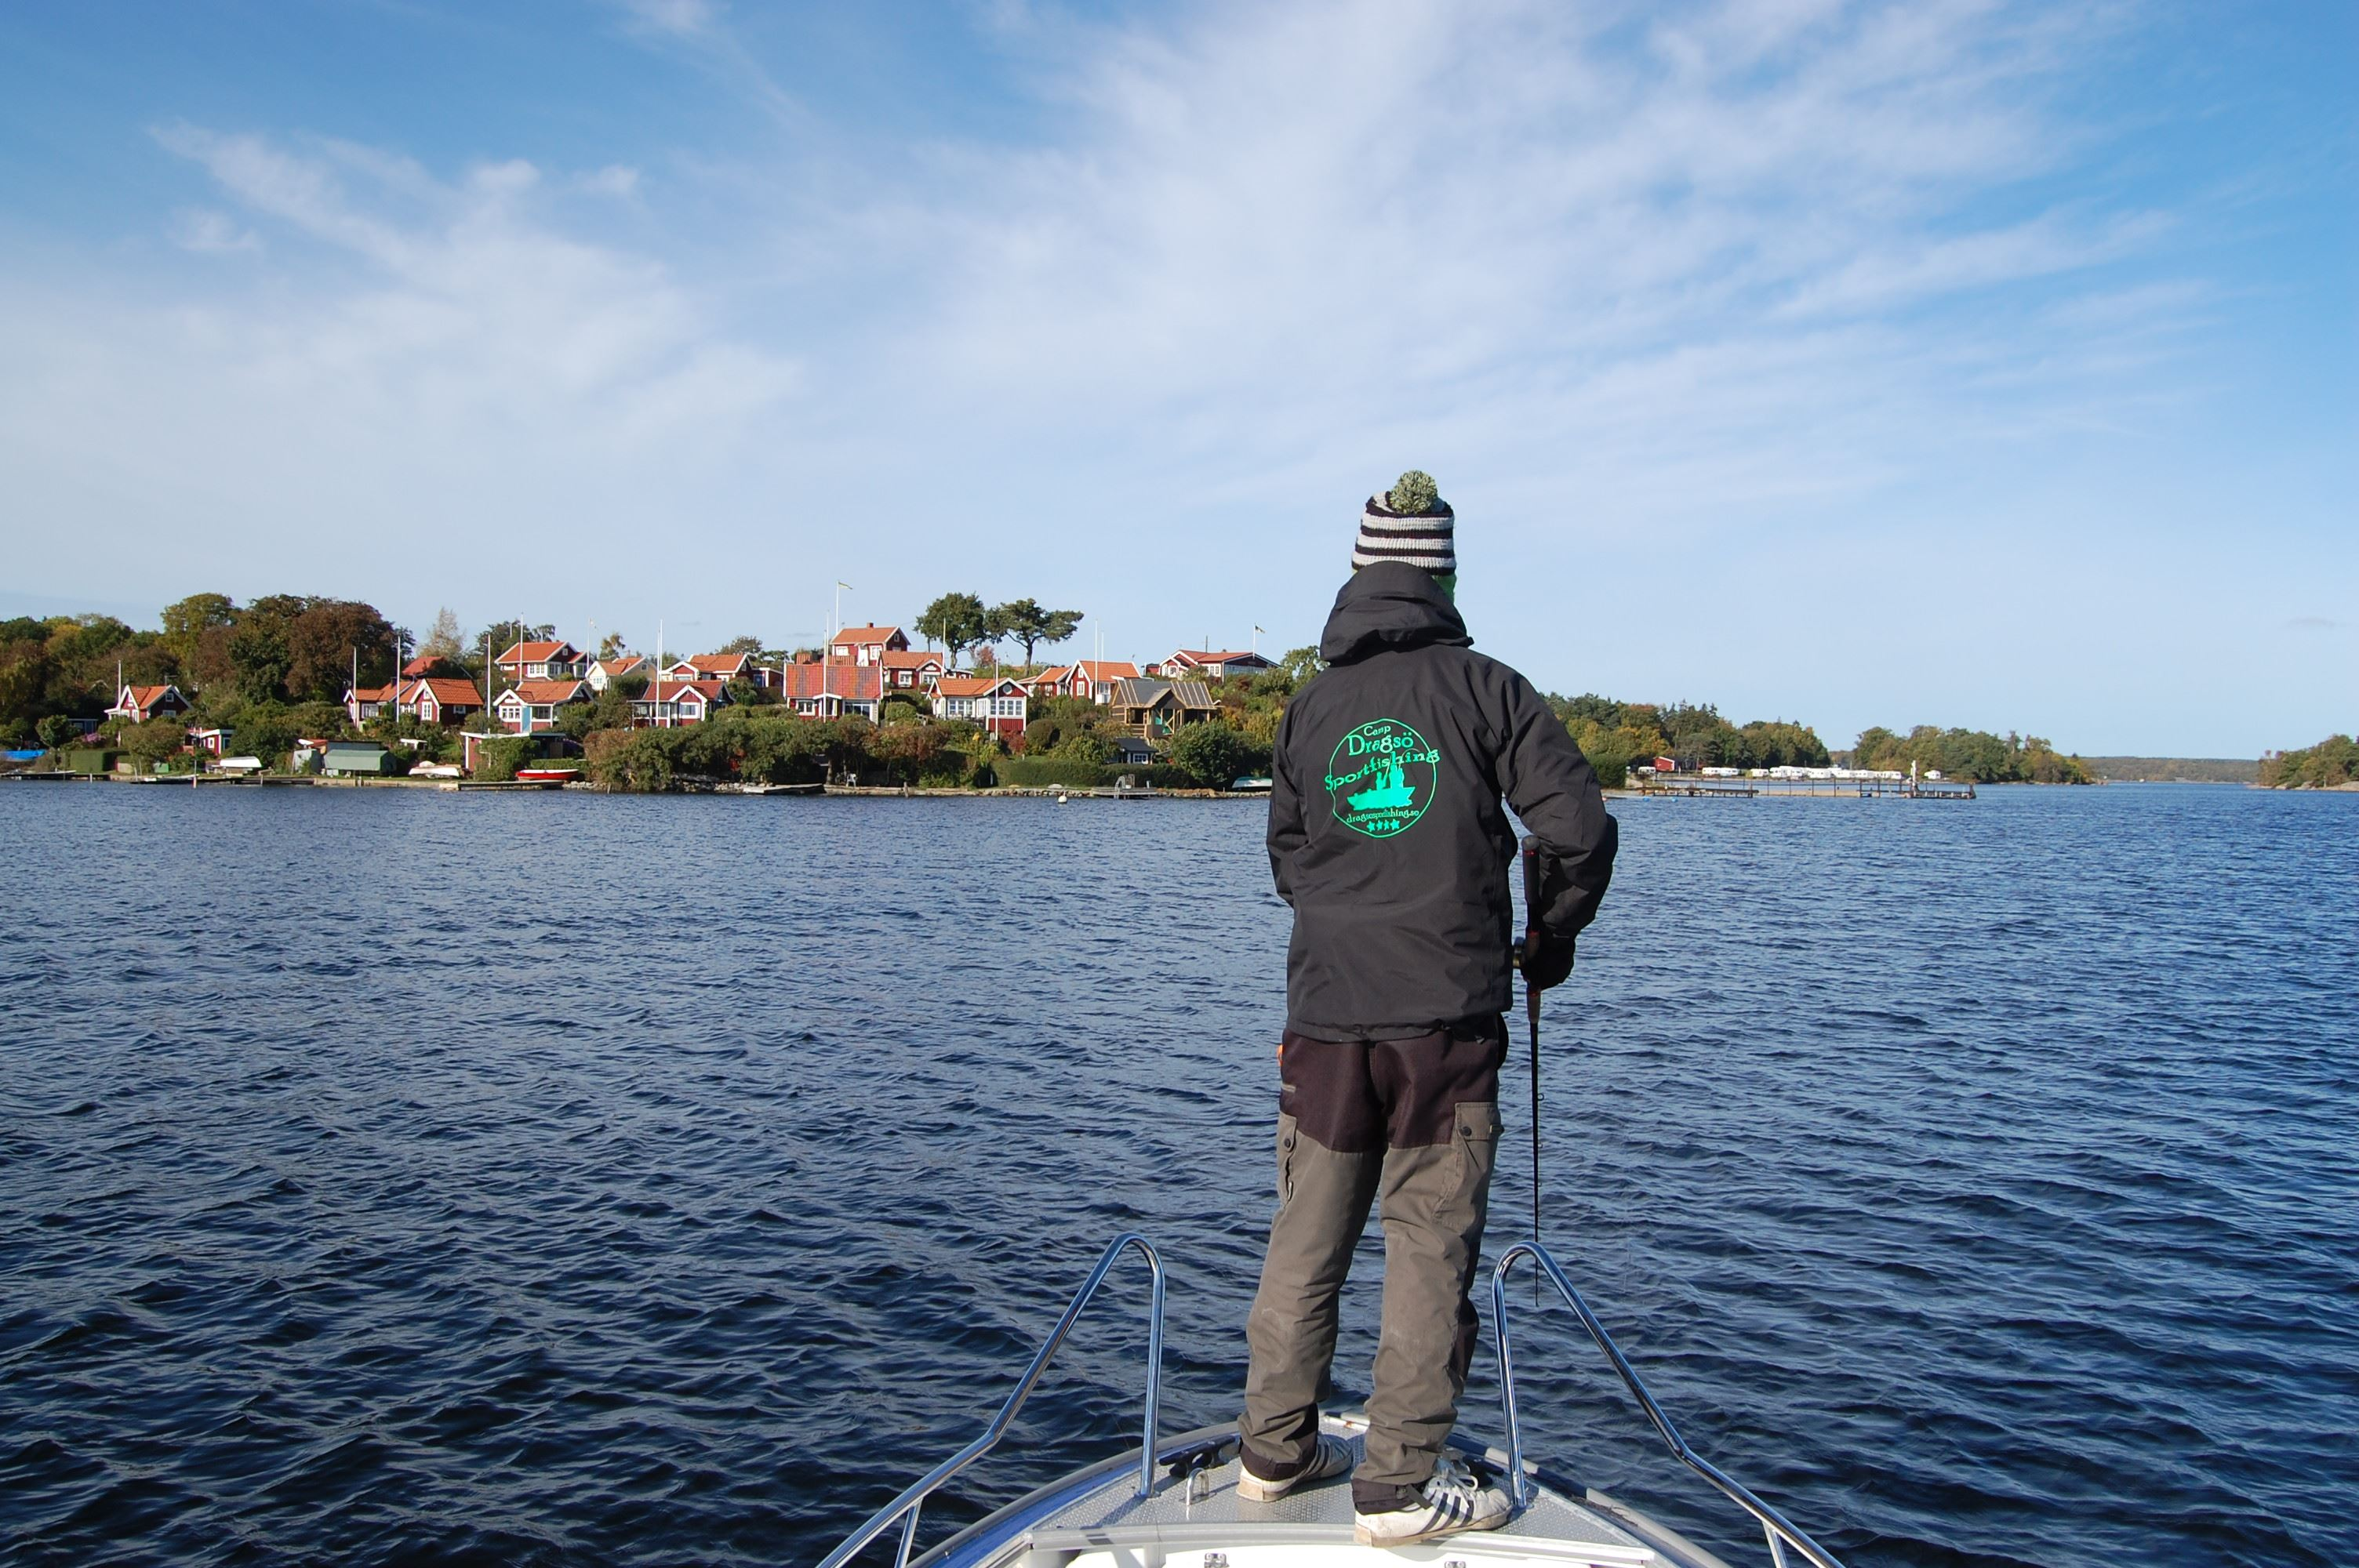 Sport fishing camp - Camp Dragsö Sportfishing